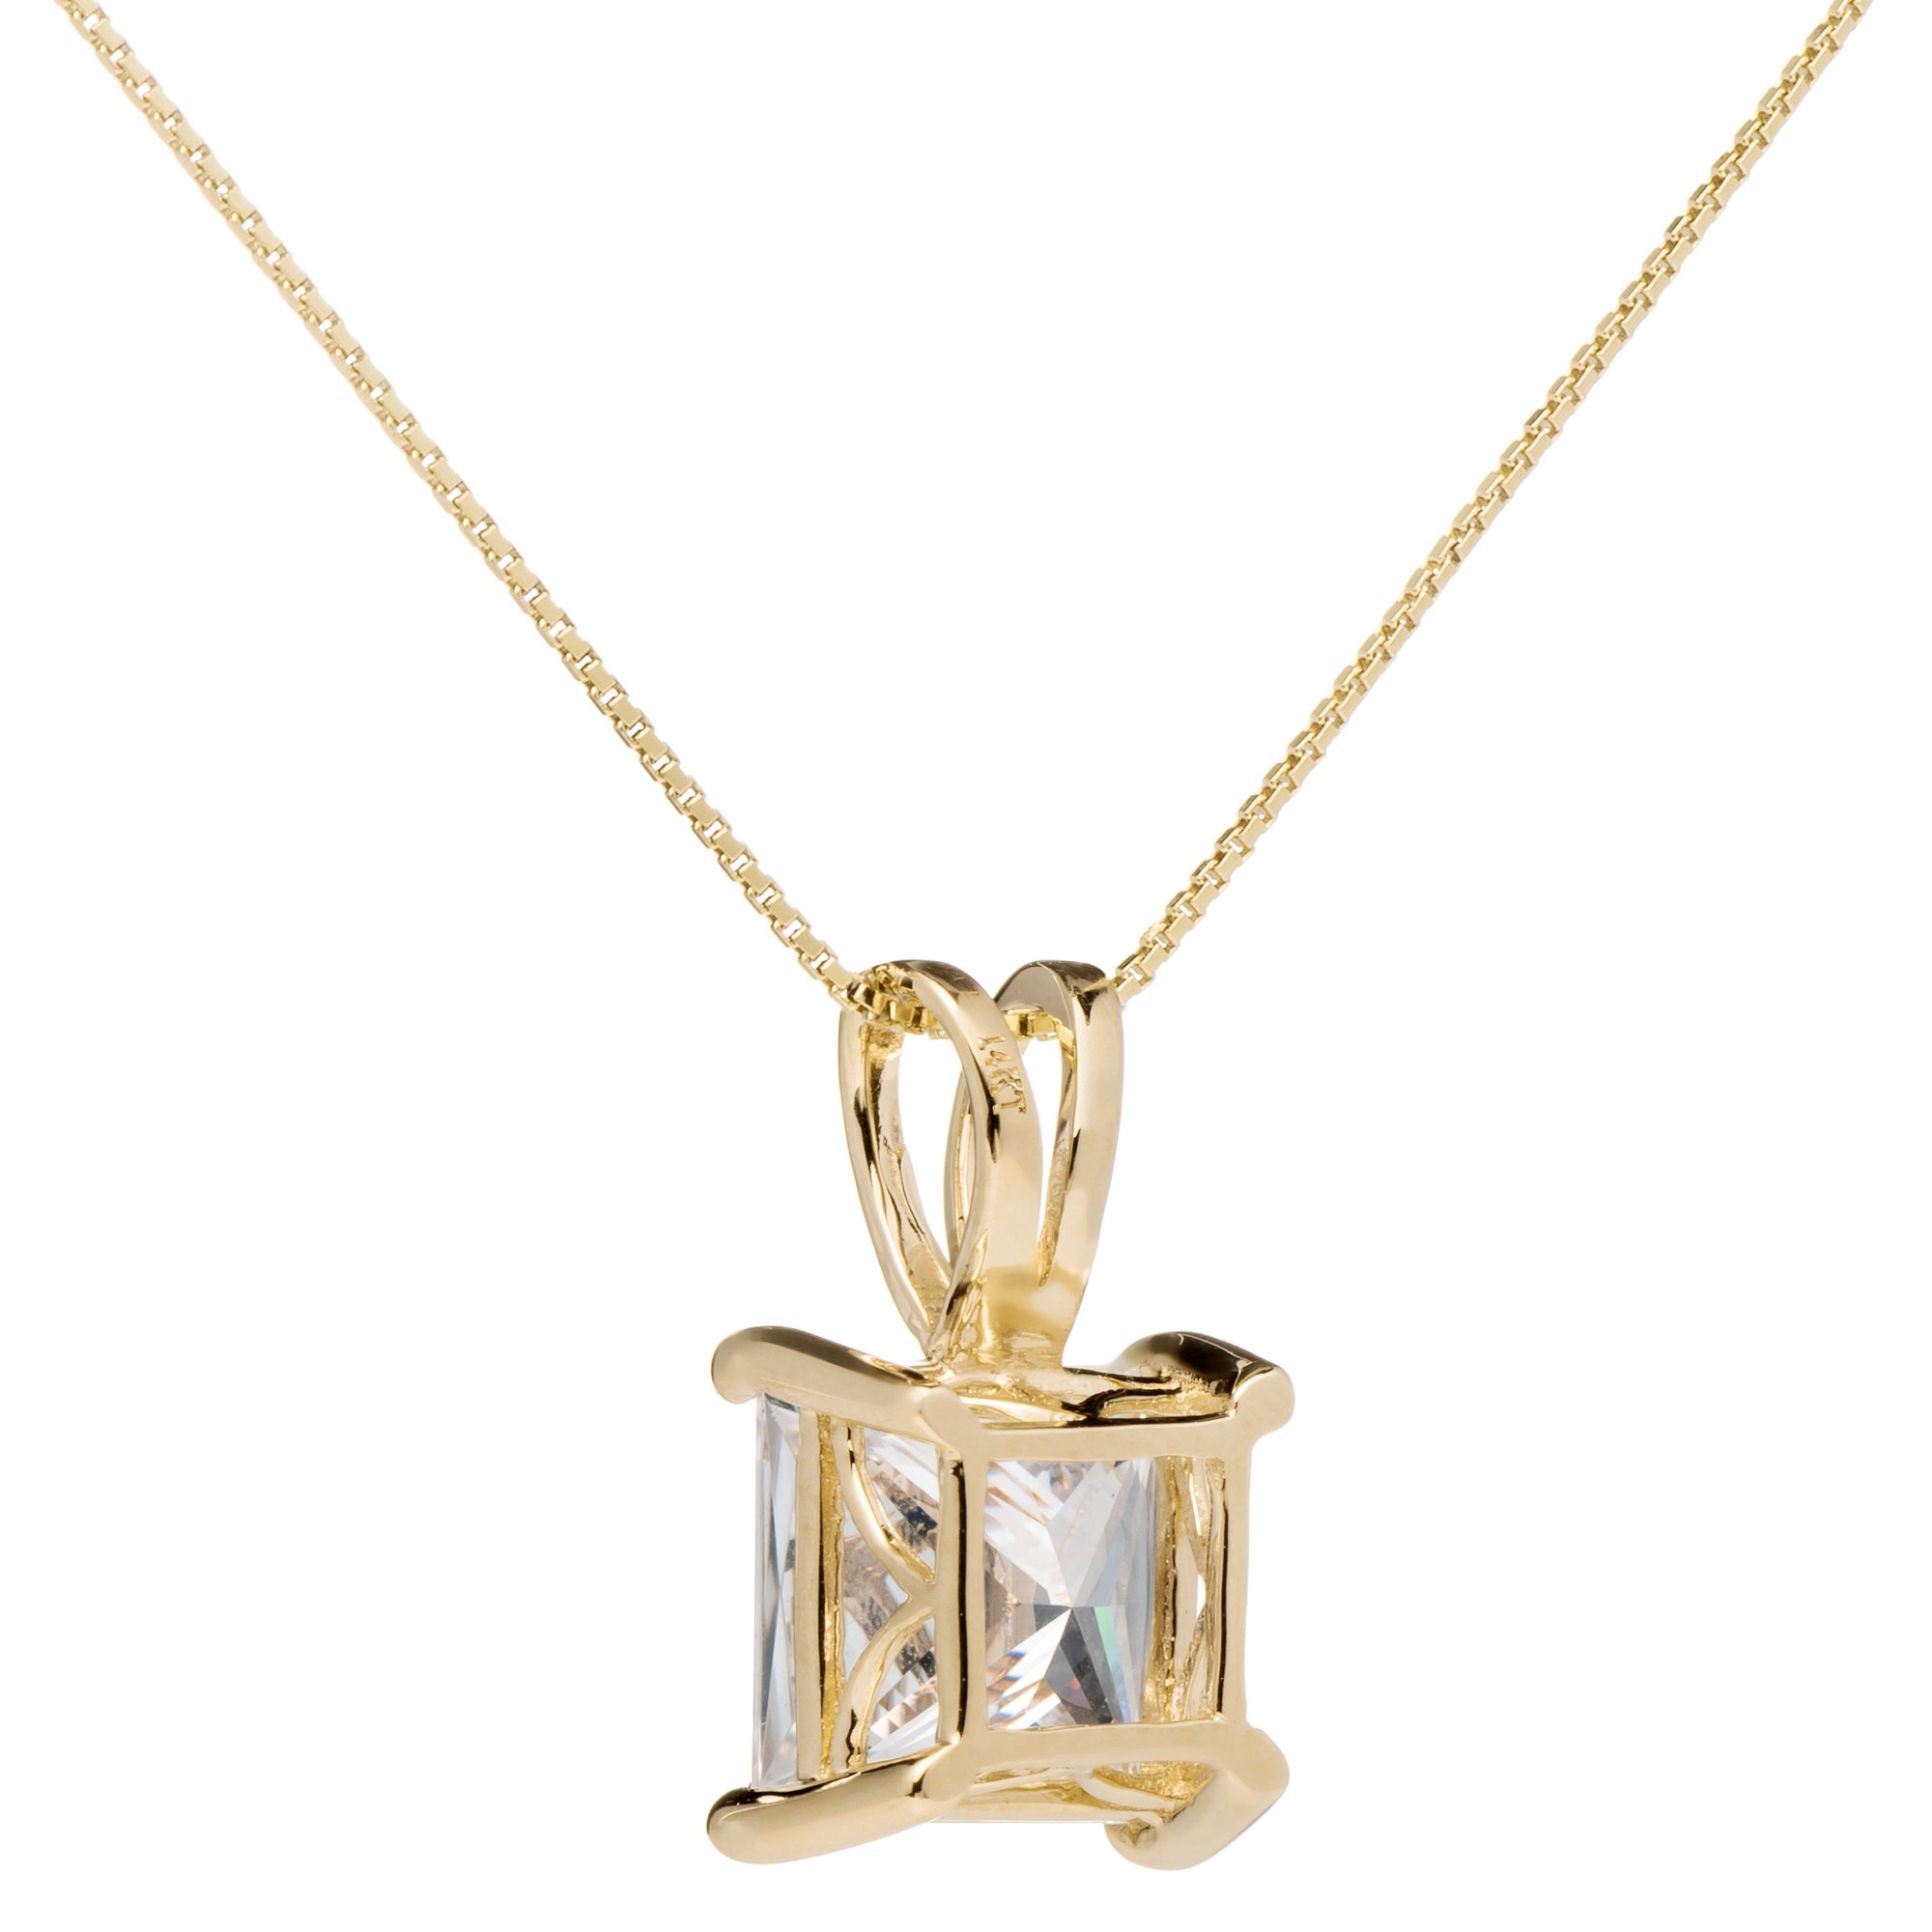 14K Solid Yellow Gold Princess Cut Cubic Zirconia Solitaire Pendant Necklace (2 Carat), 16 inch .50mm Box Link Chain, Gift Box by Everyday Elegance Jewelry (Image #3)